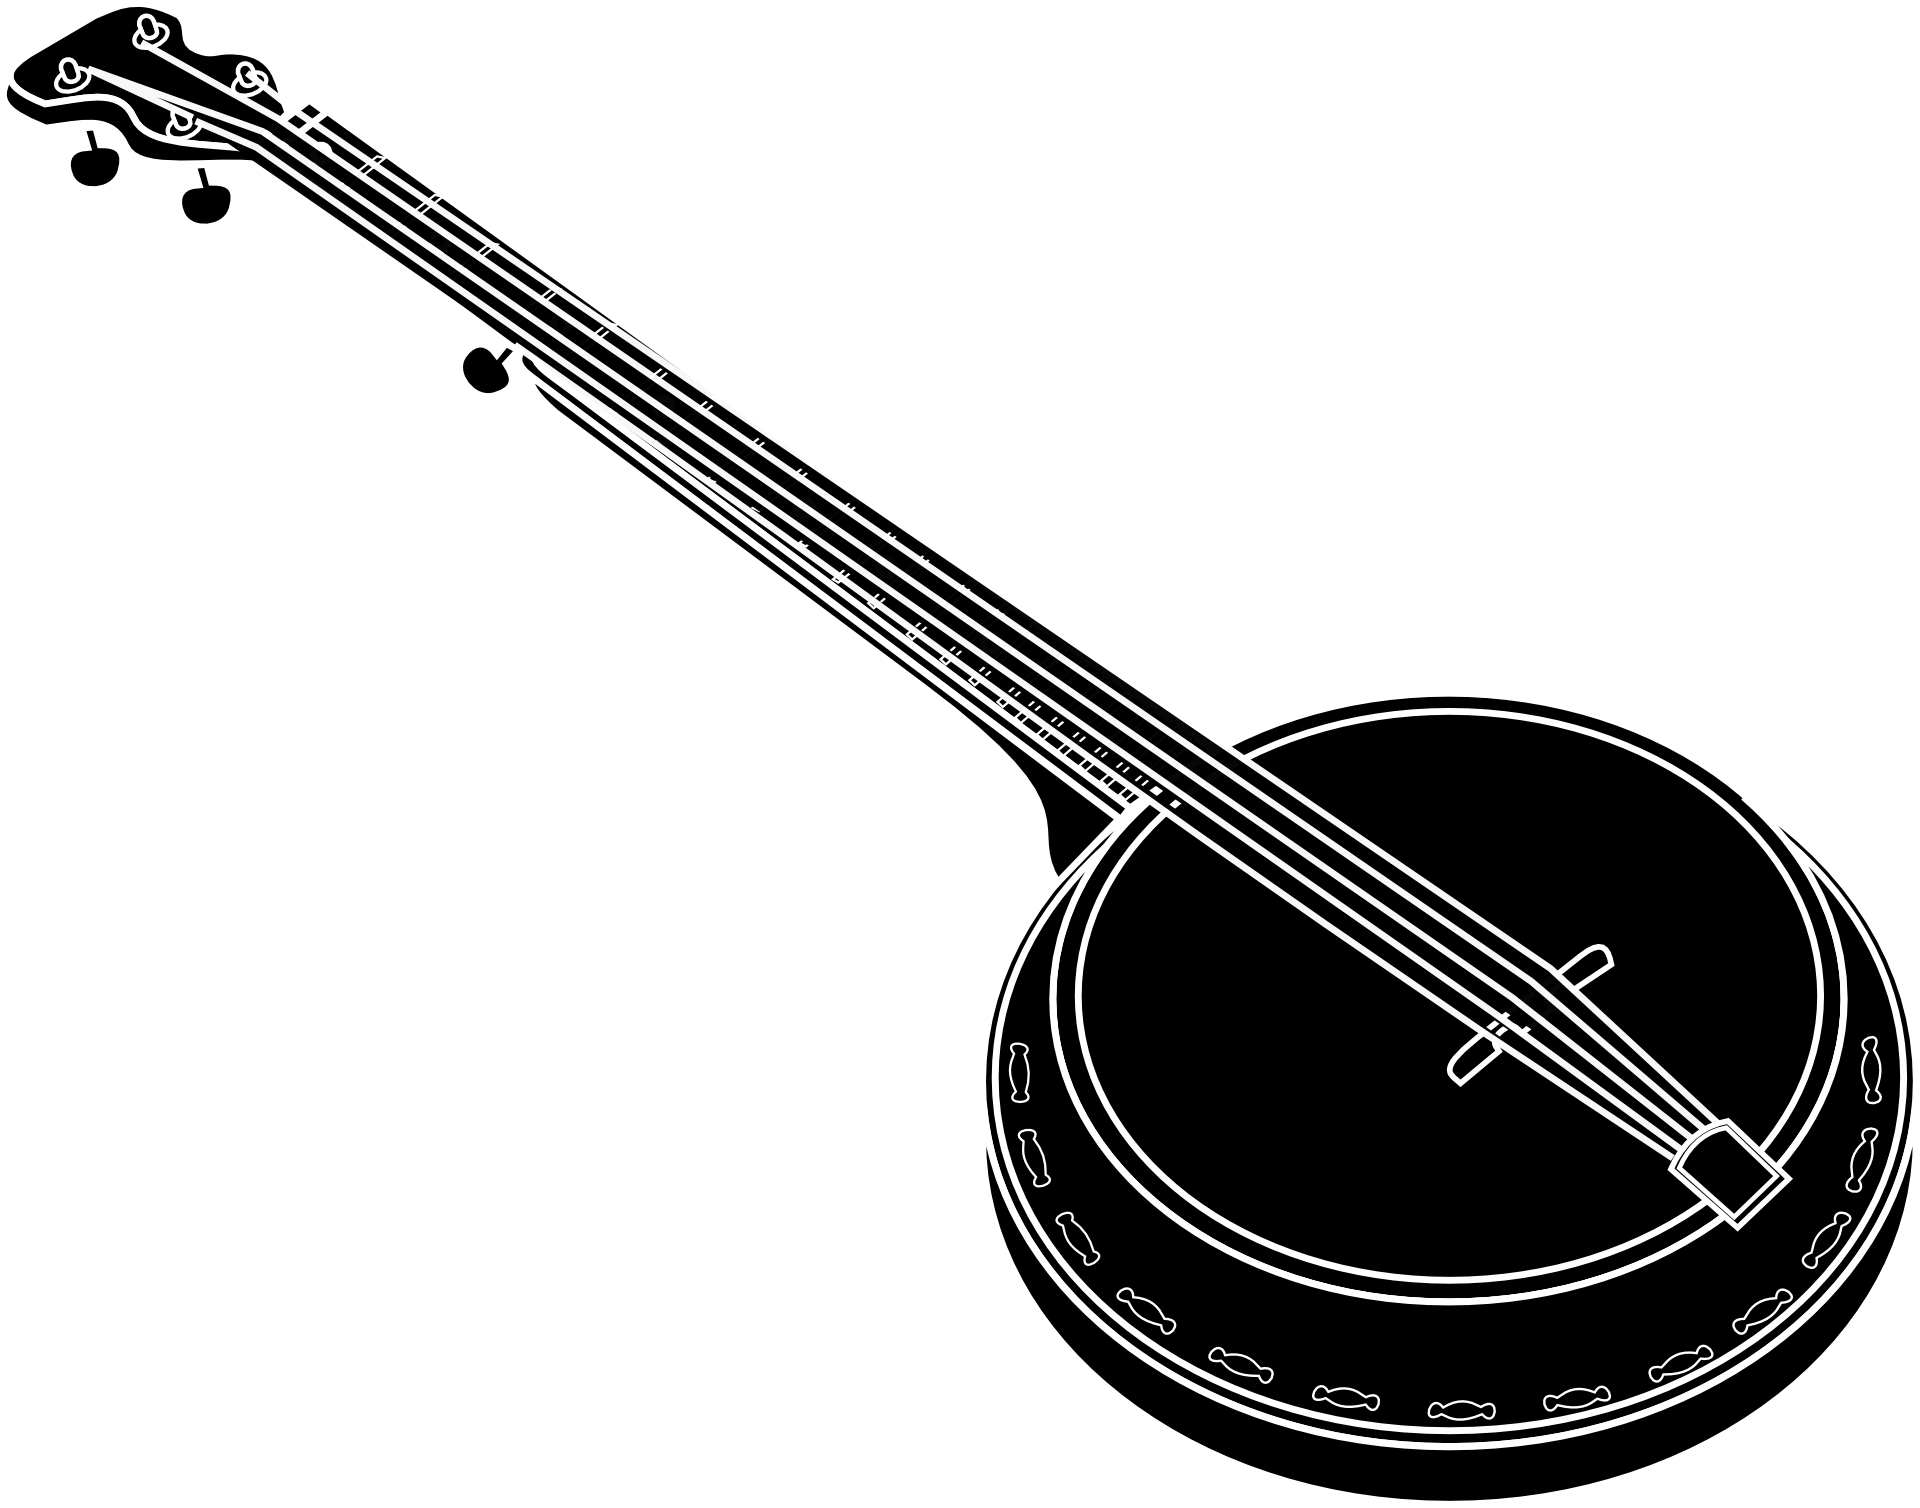 picture String cheese clipart. Banjo drawing musical instruments.